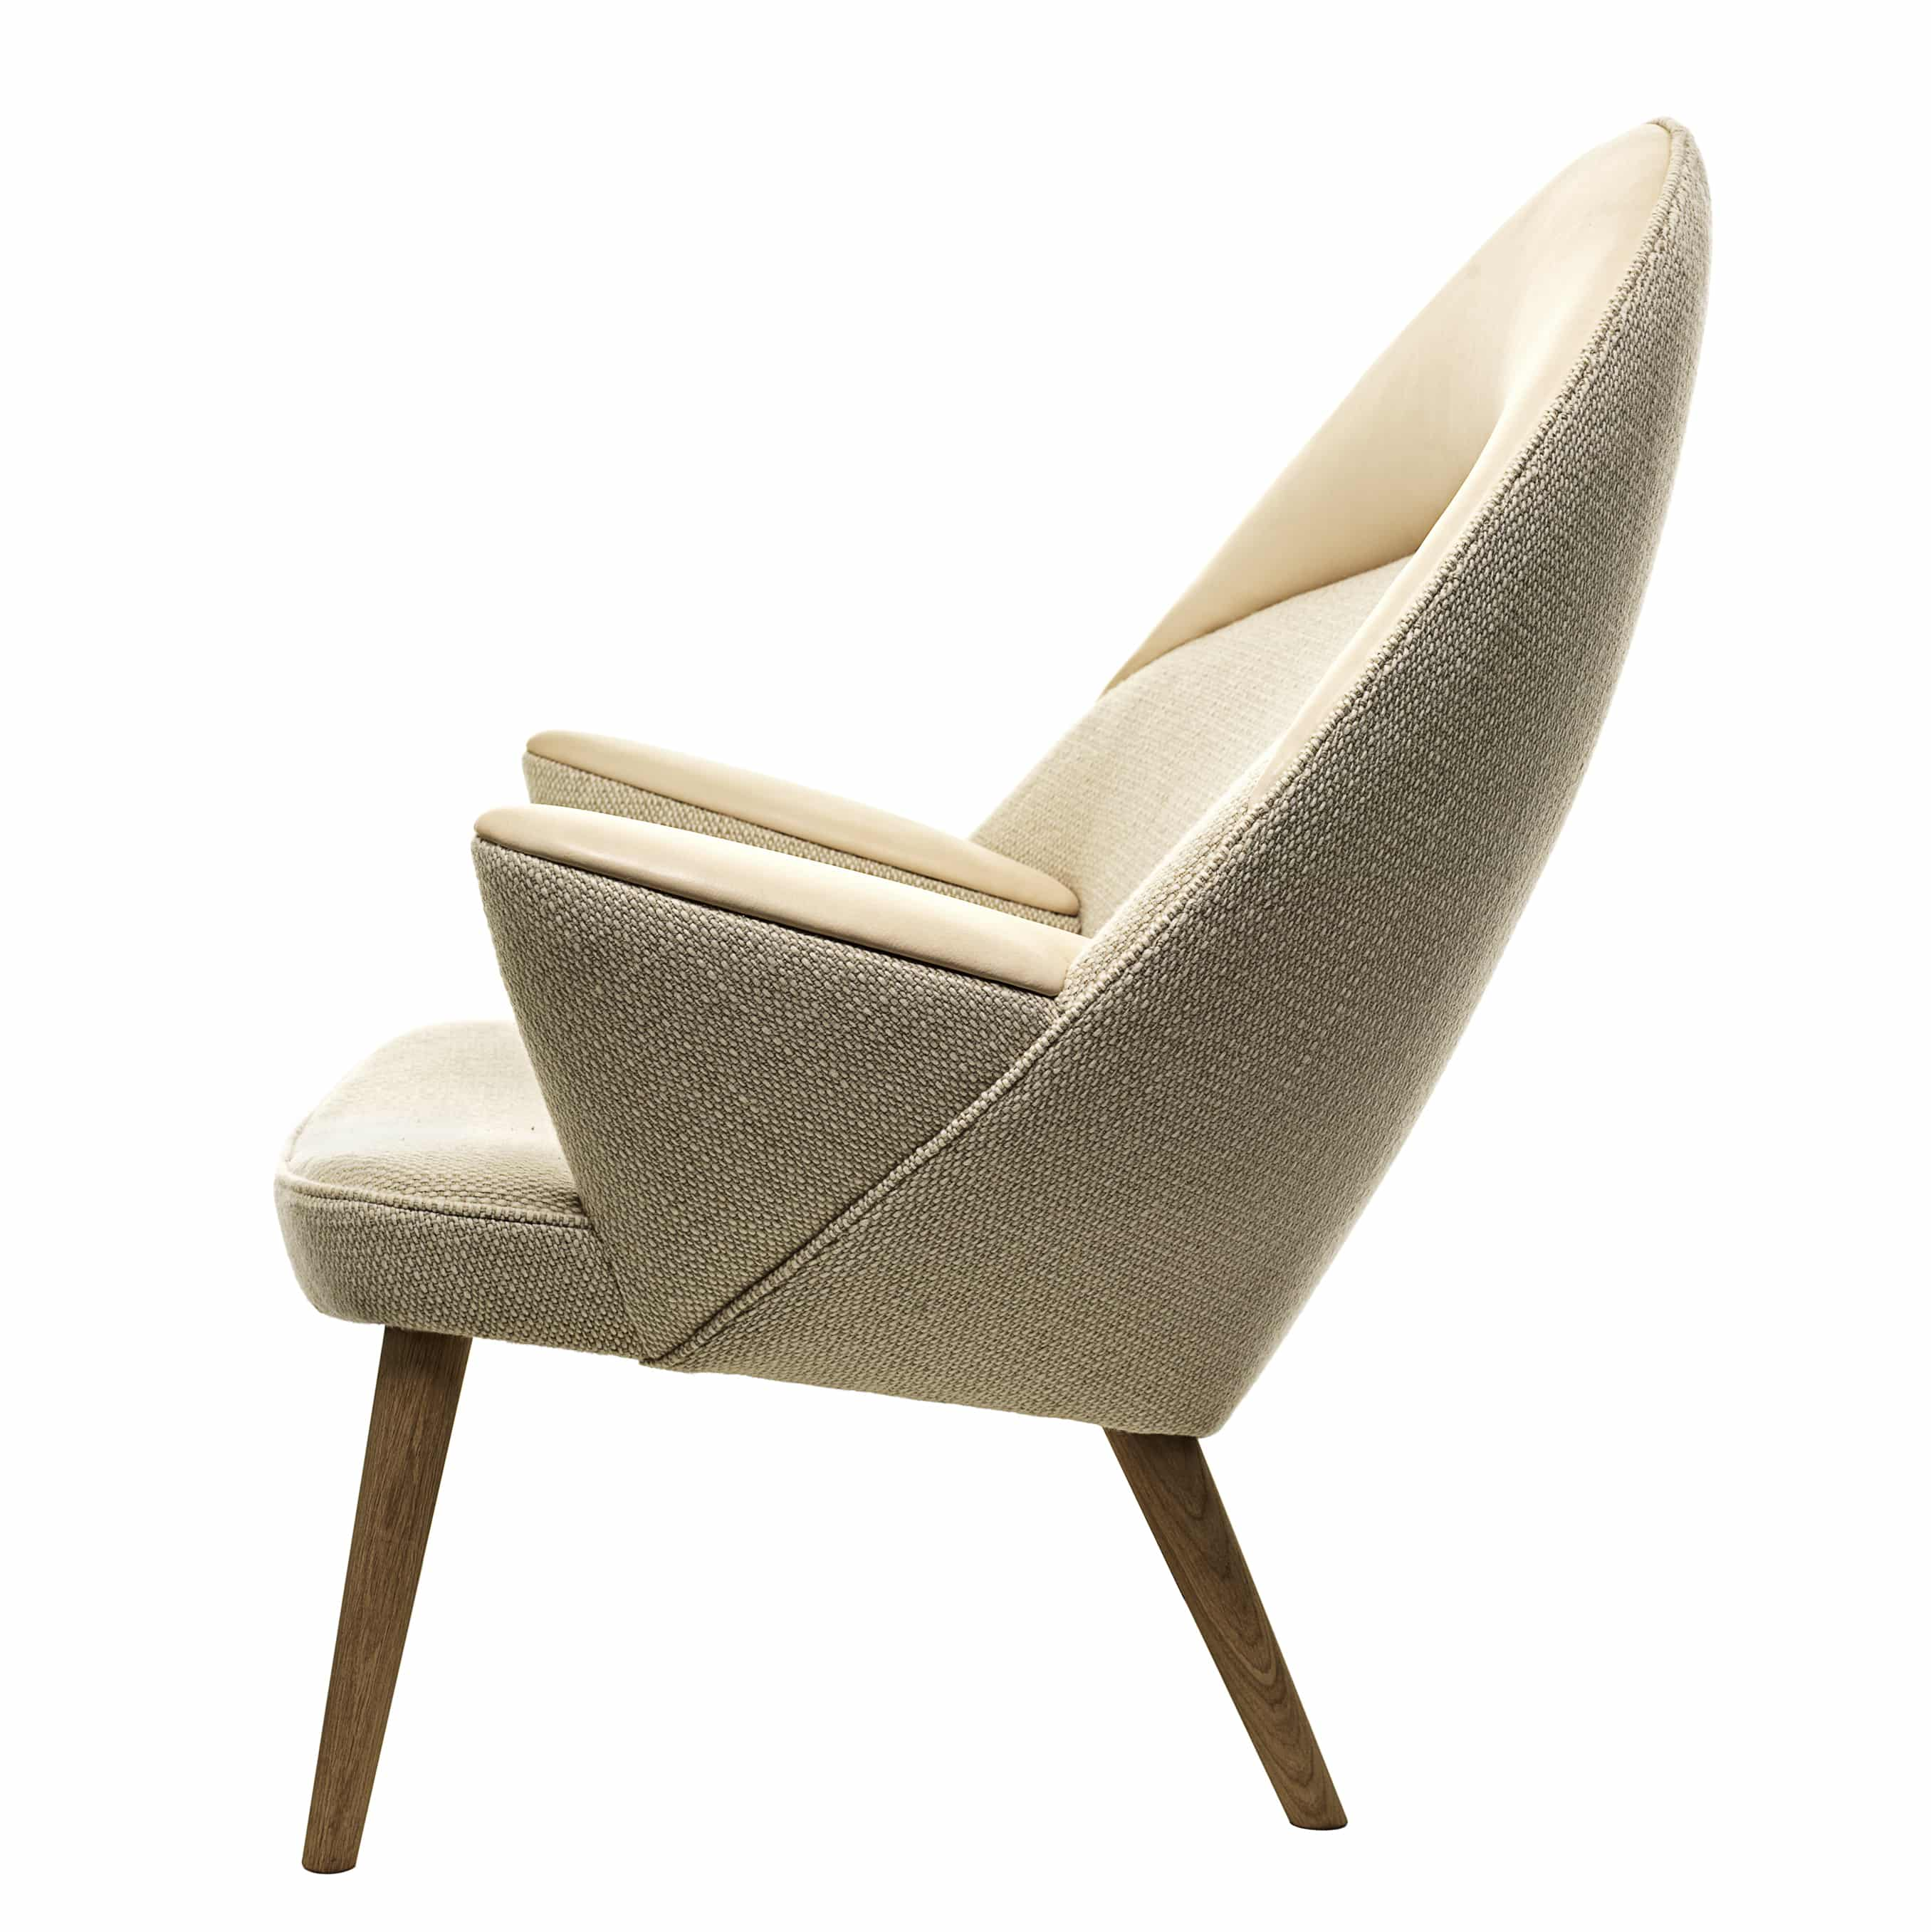 Upholstered Peacock Chair Pp M 248 Bler Scandinavian Design